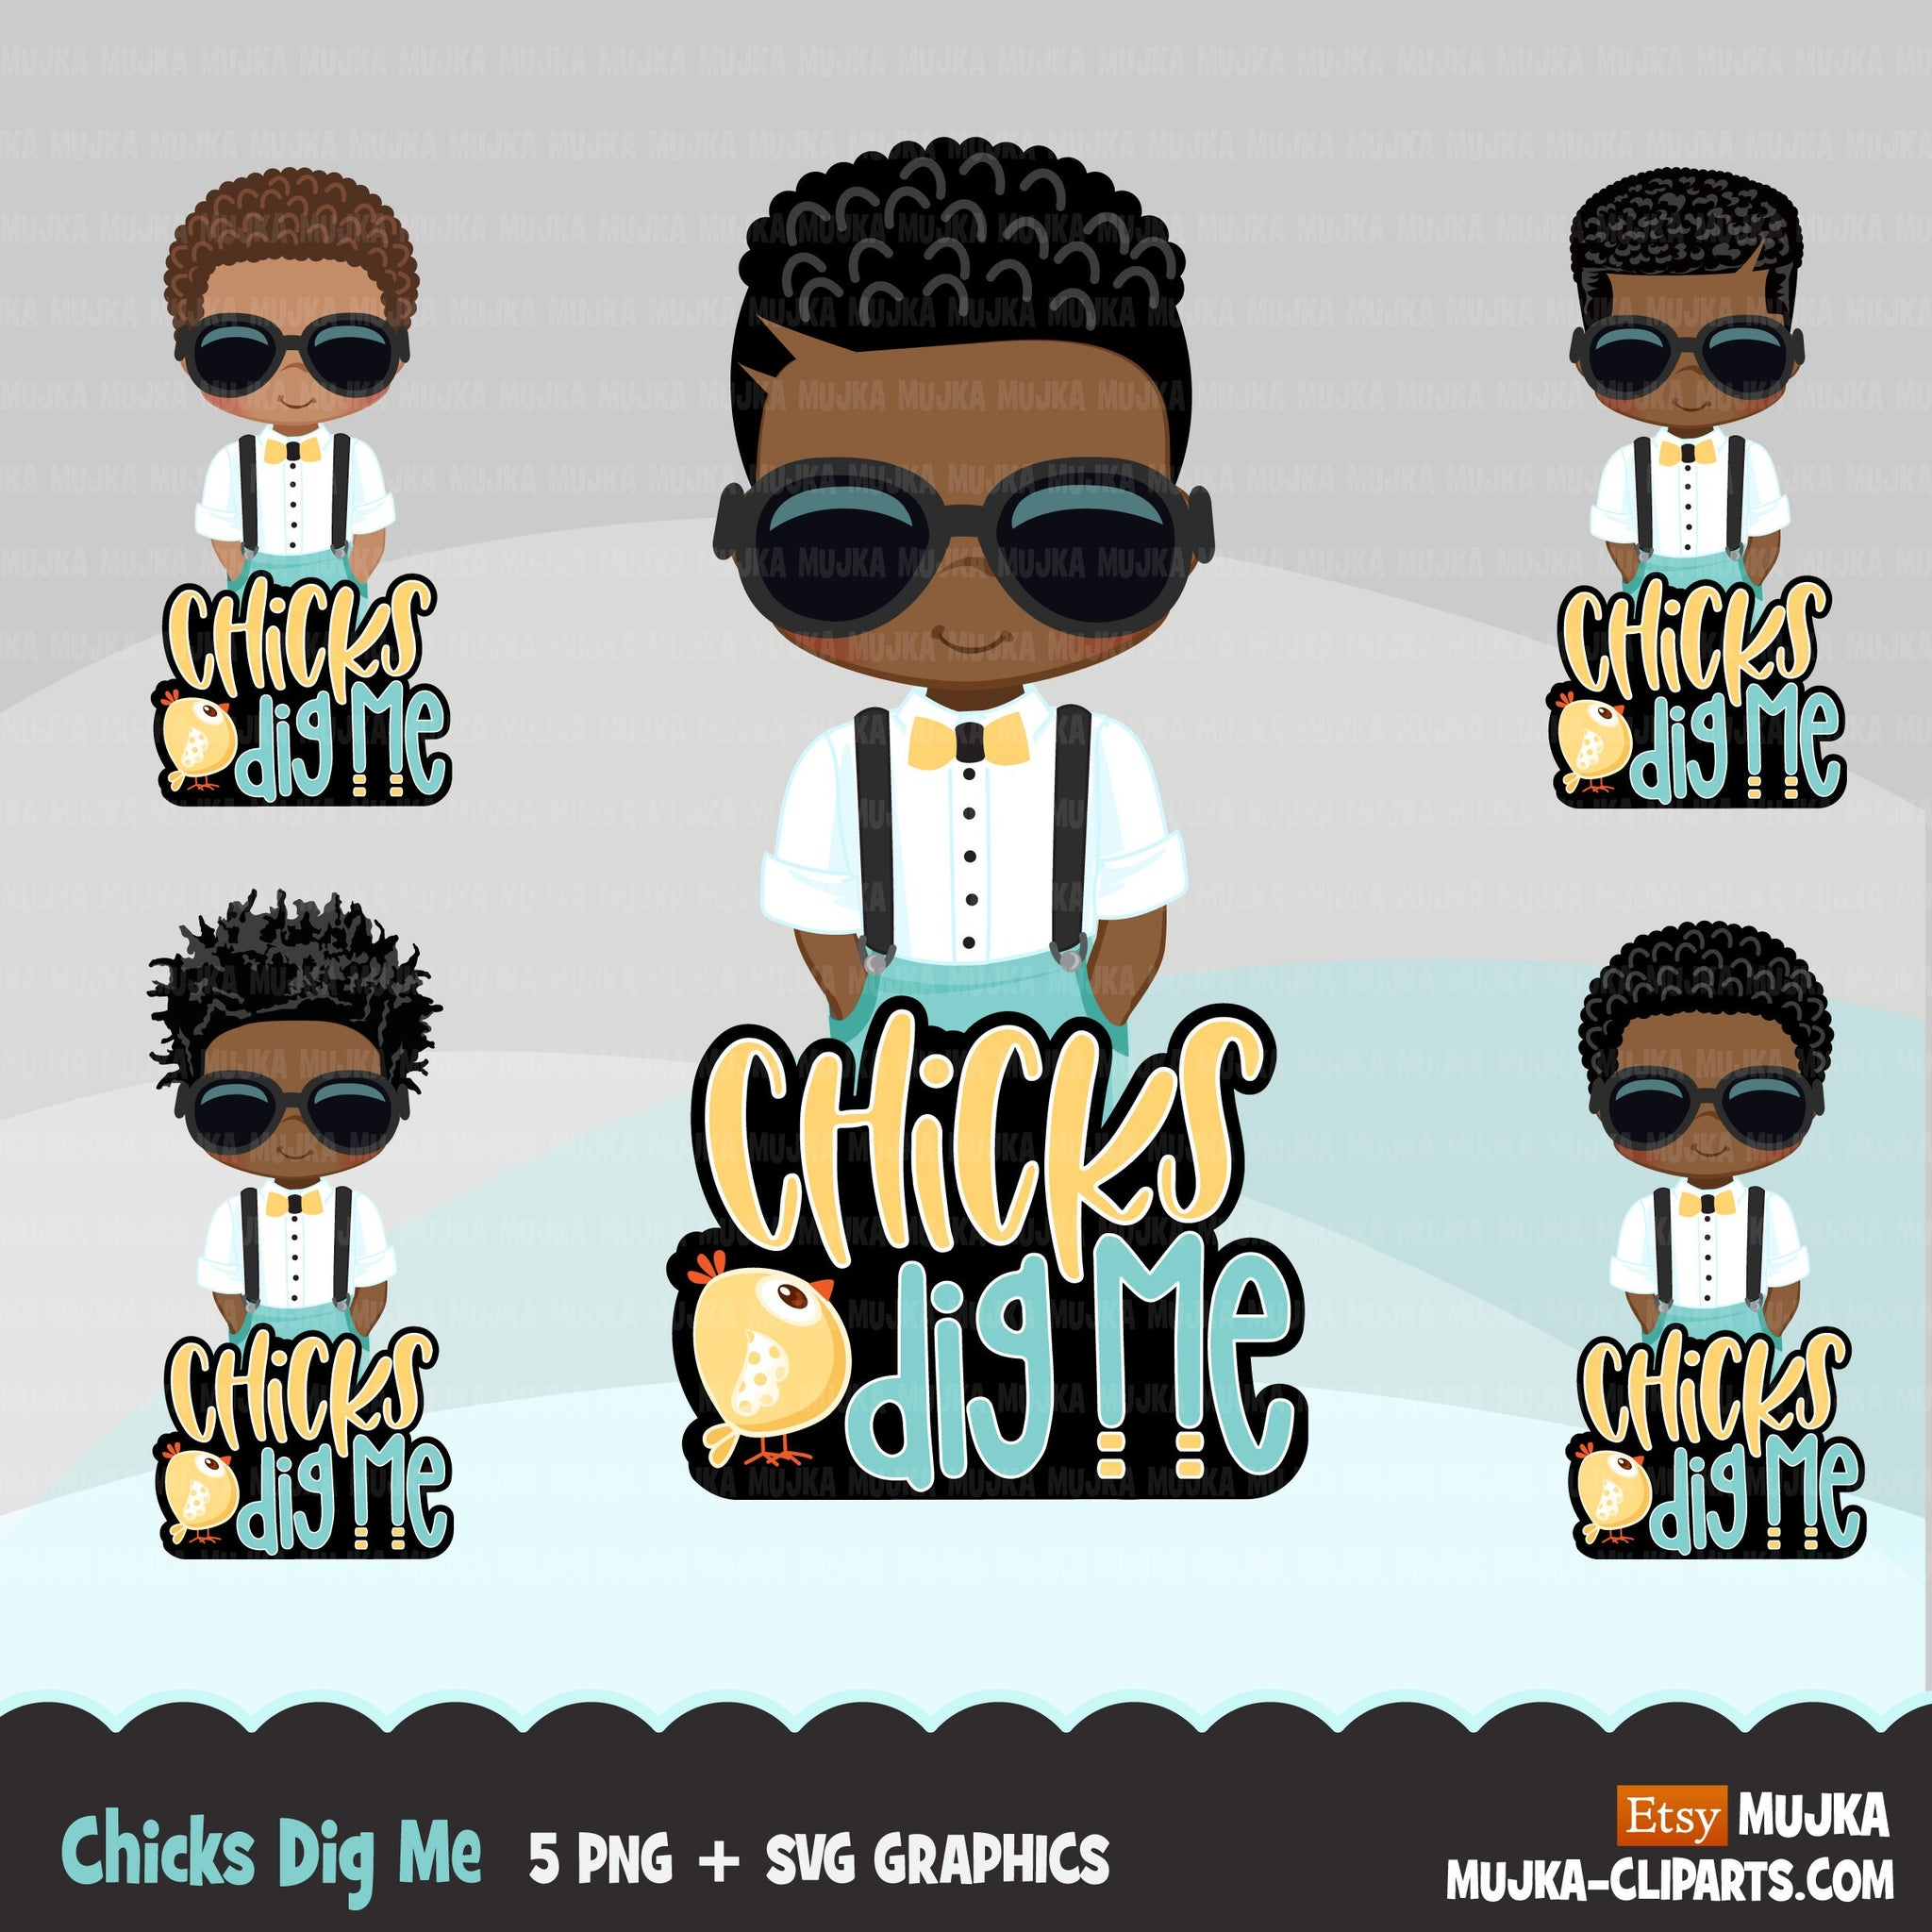 Easter PNG digital, Chicks dig me Printable HTV sublimation image transfer clipart, t-shirt Afro black boy graphics